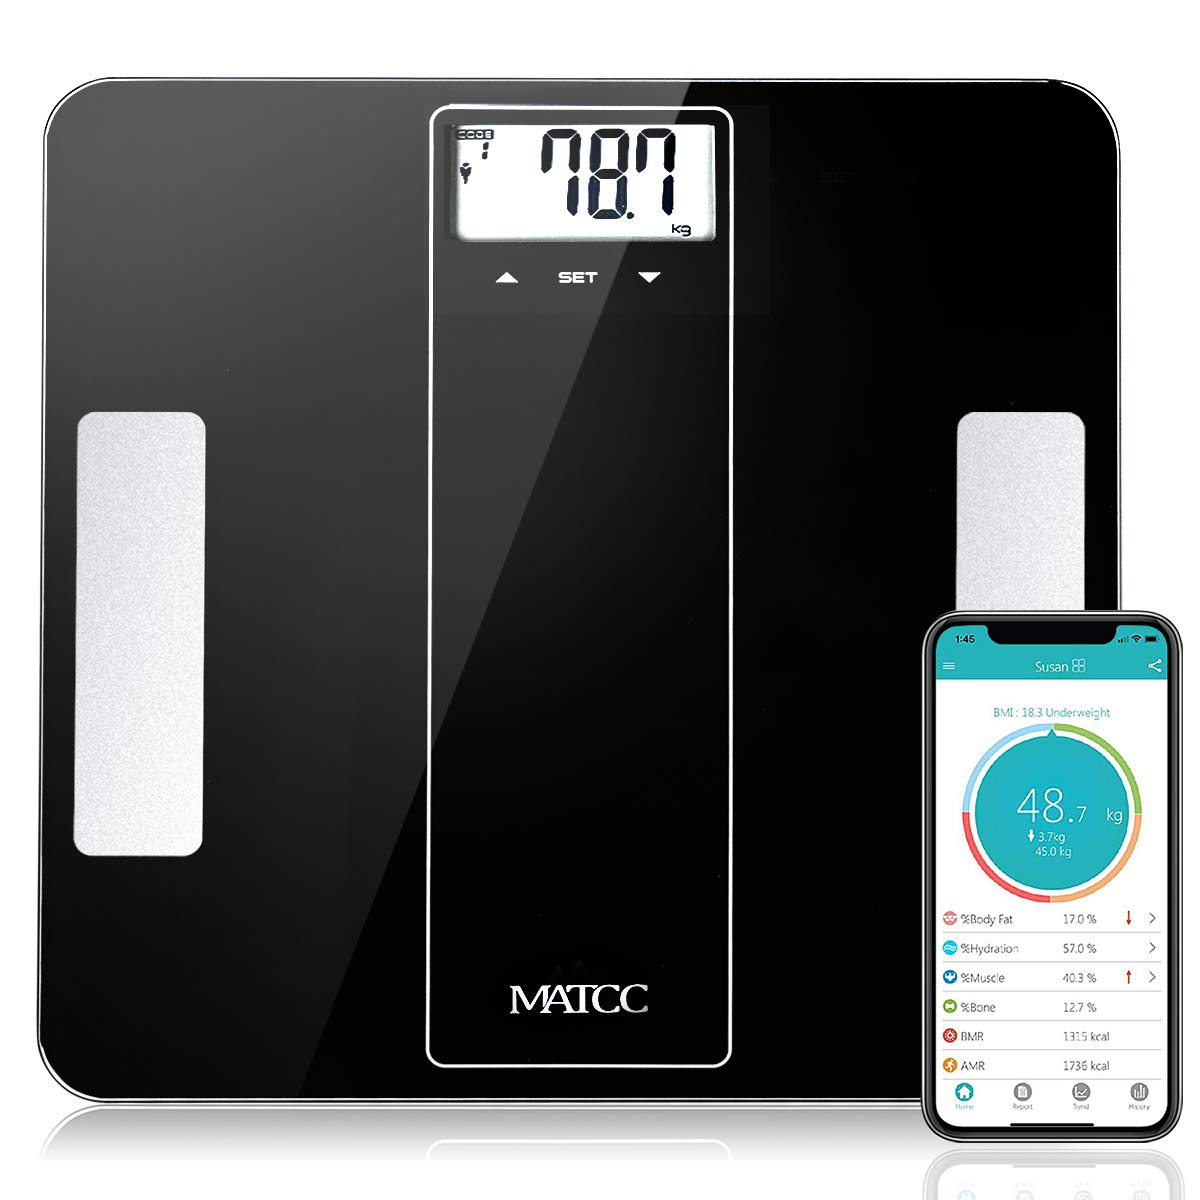 MATCC Bluetooth Body Fat Scale Smart Digital Wireless Weight Bathroom Scale with iOS and Android APP Body Composition Analyzer Health Monitor 400 lbs Capacity